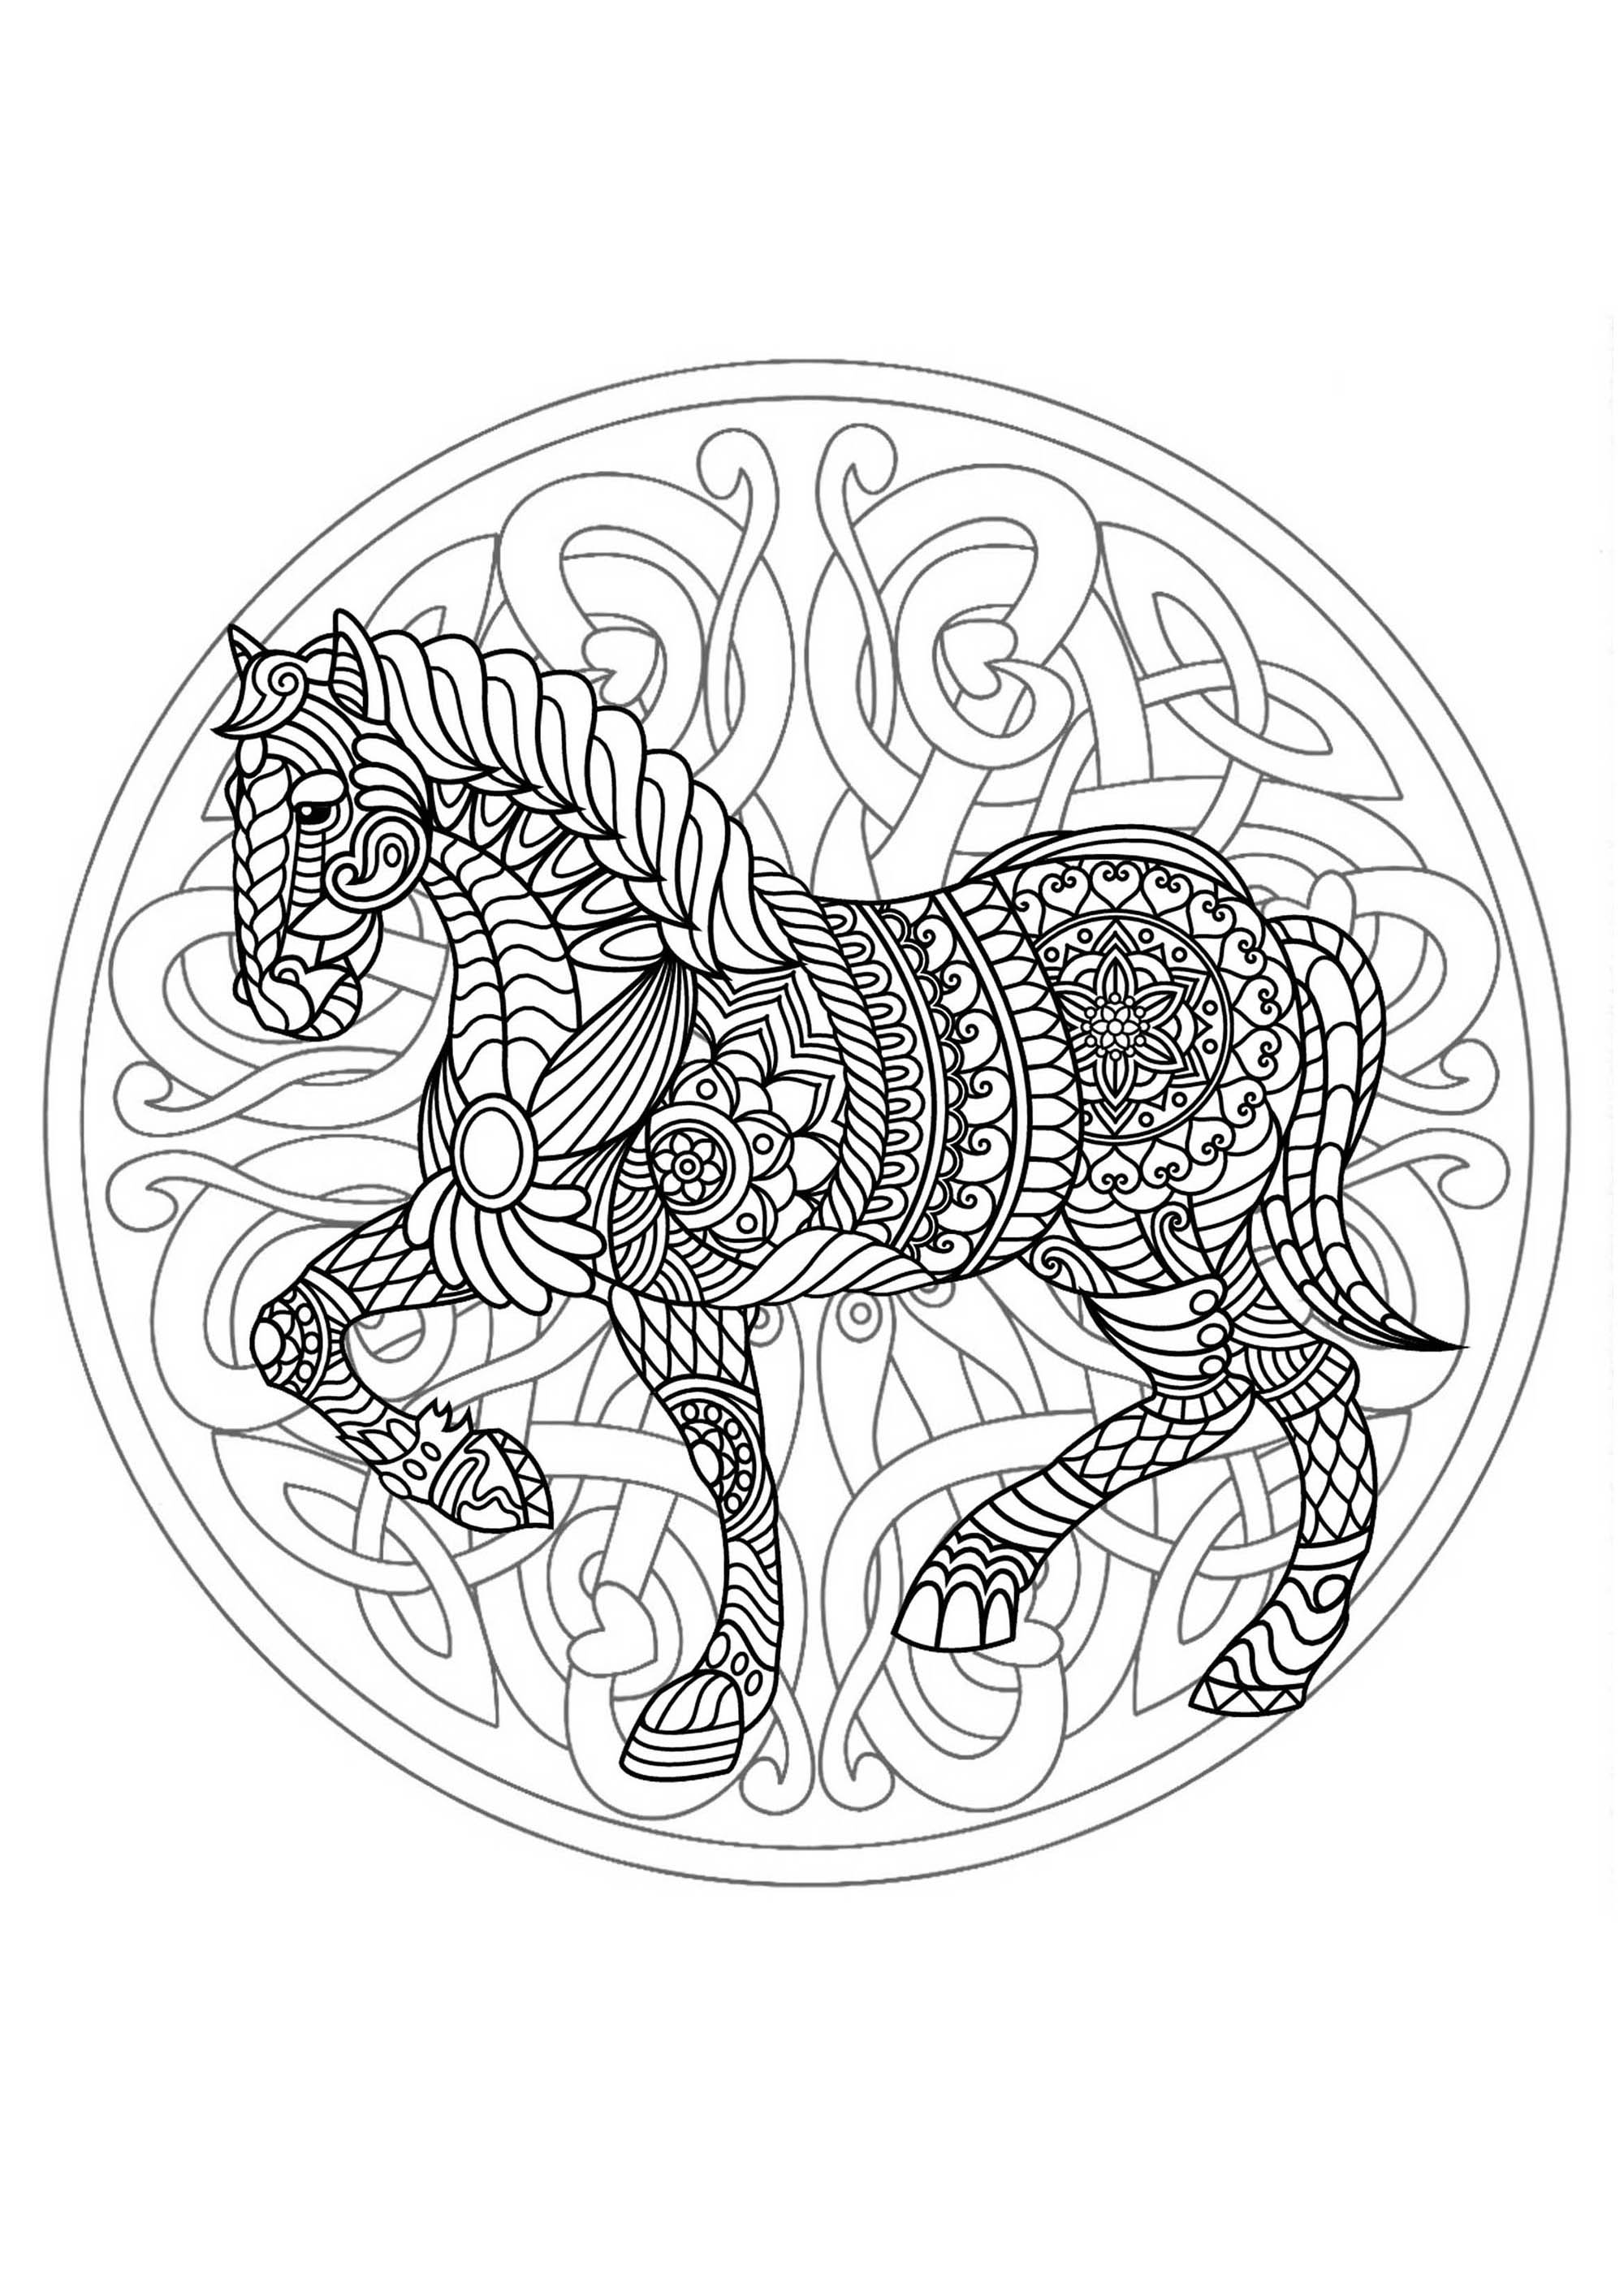 Mandala With Beautiful Horse And Interlaced Patterns M